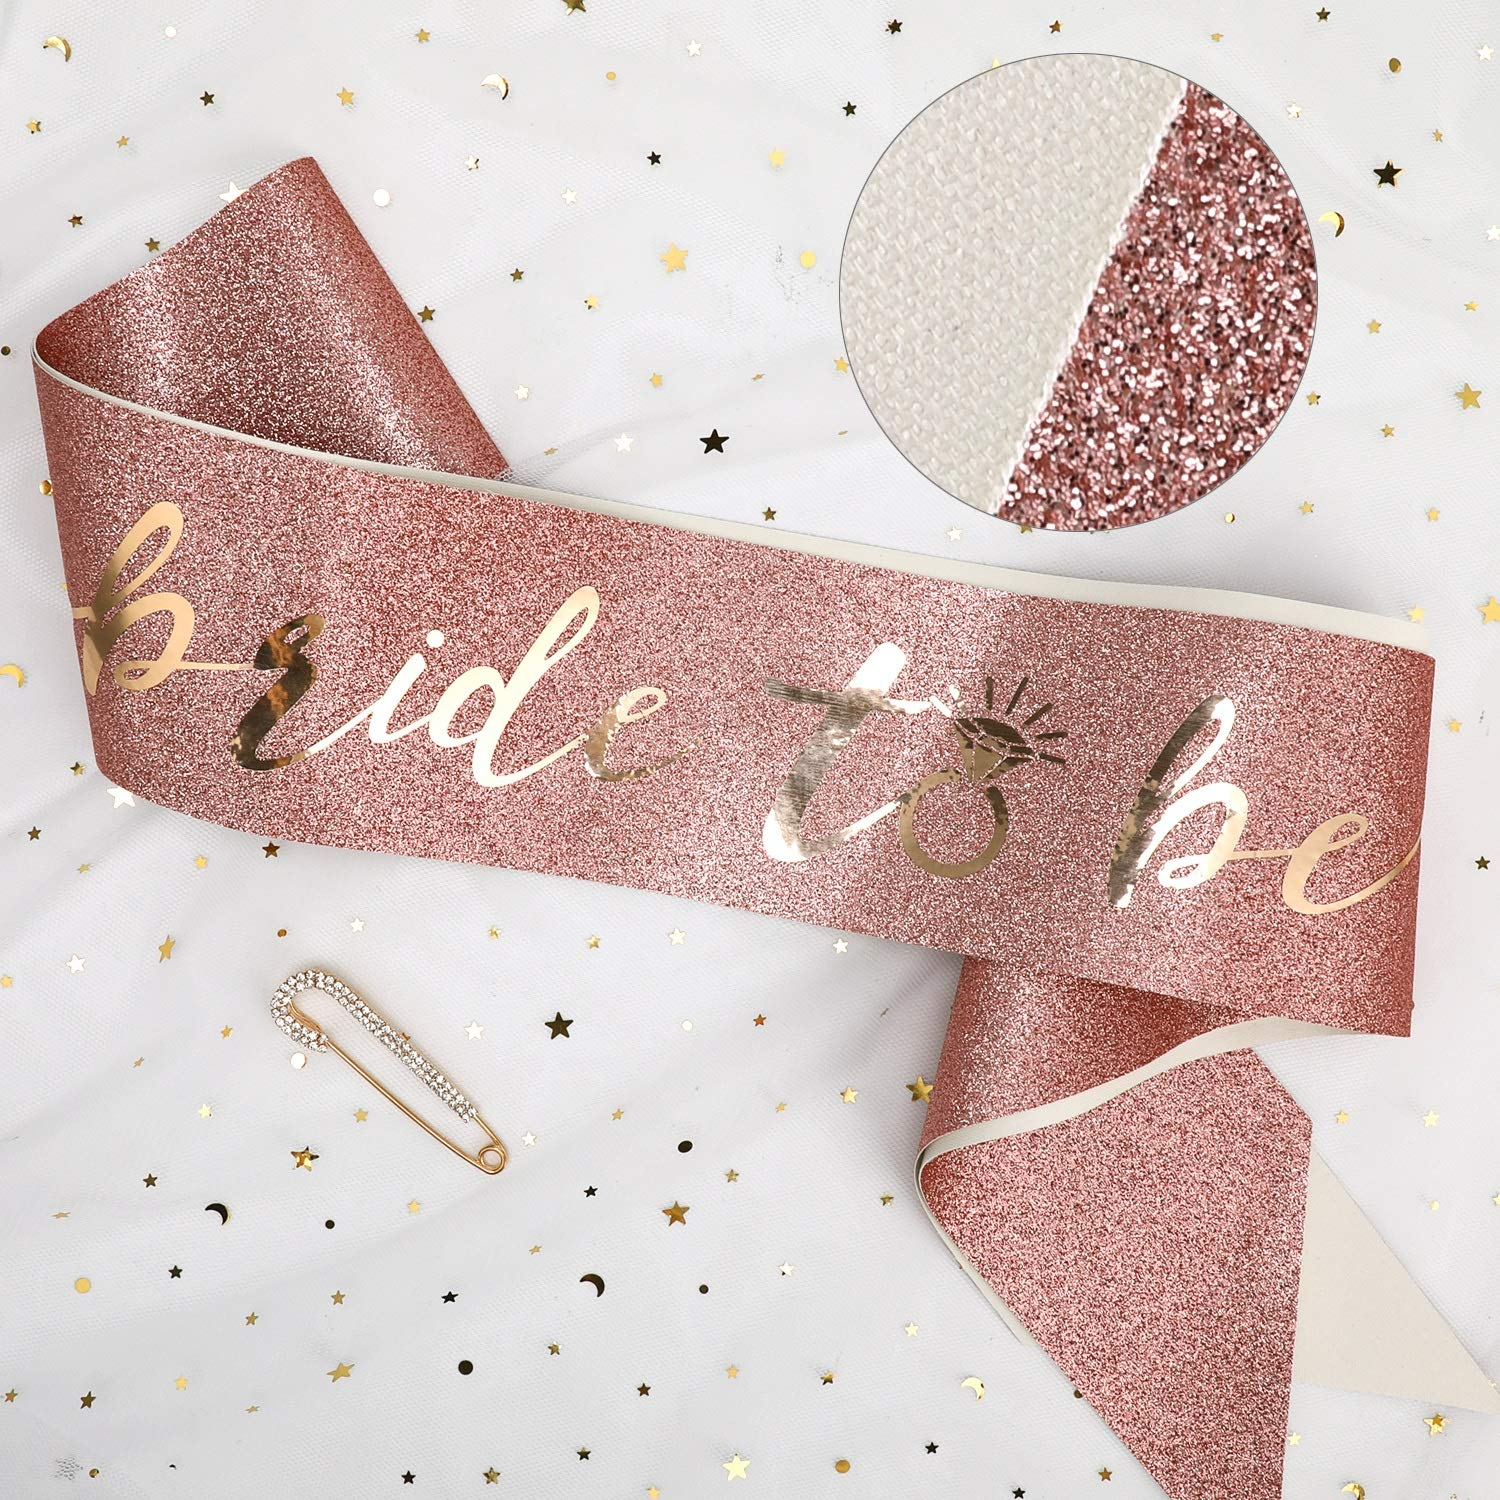 Konsait Glitter Pink Rose Gold Bride to Be Sash Hen Do Sash Hen Party Accessories Bride to Be Gift for Bachelorette Wedding Shower Hen Do Party Decoration Bridal